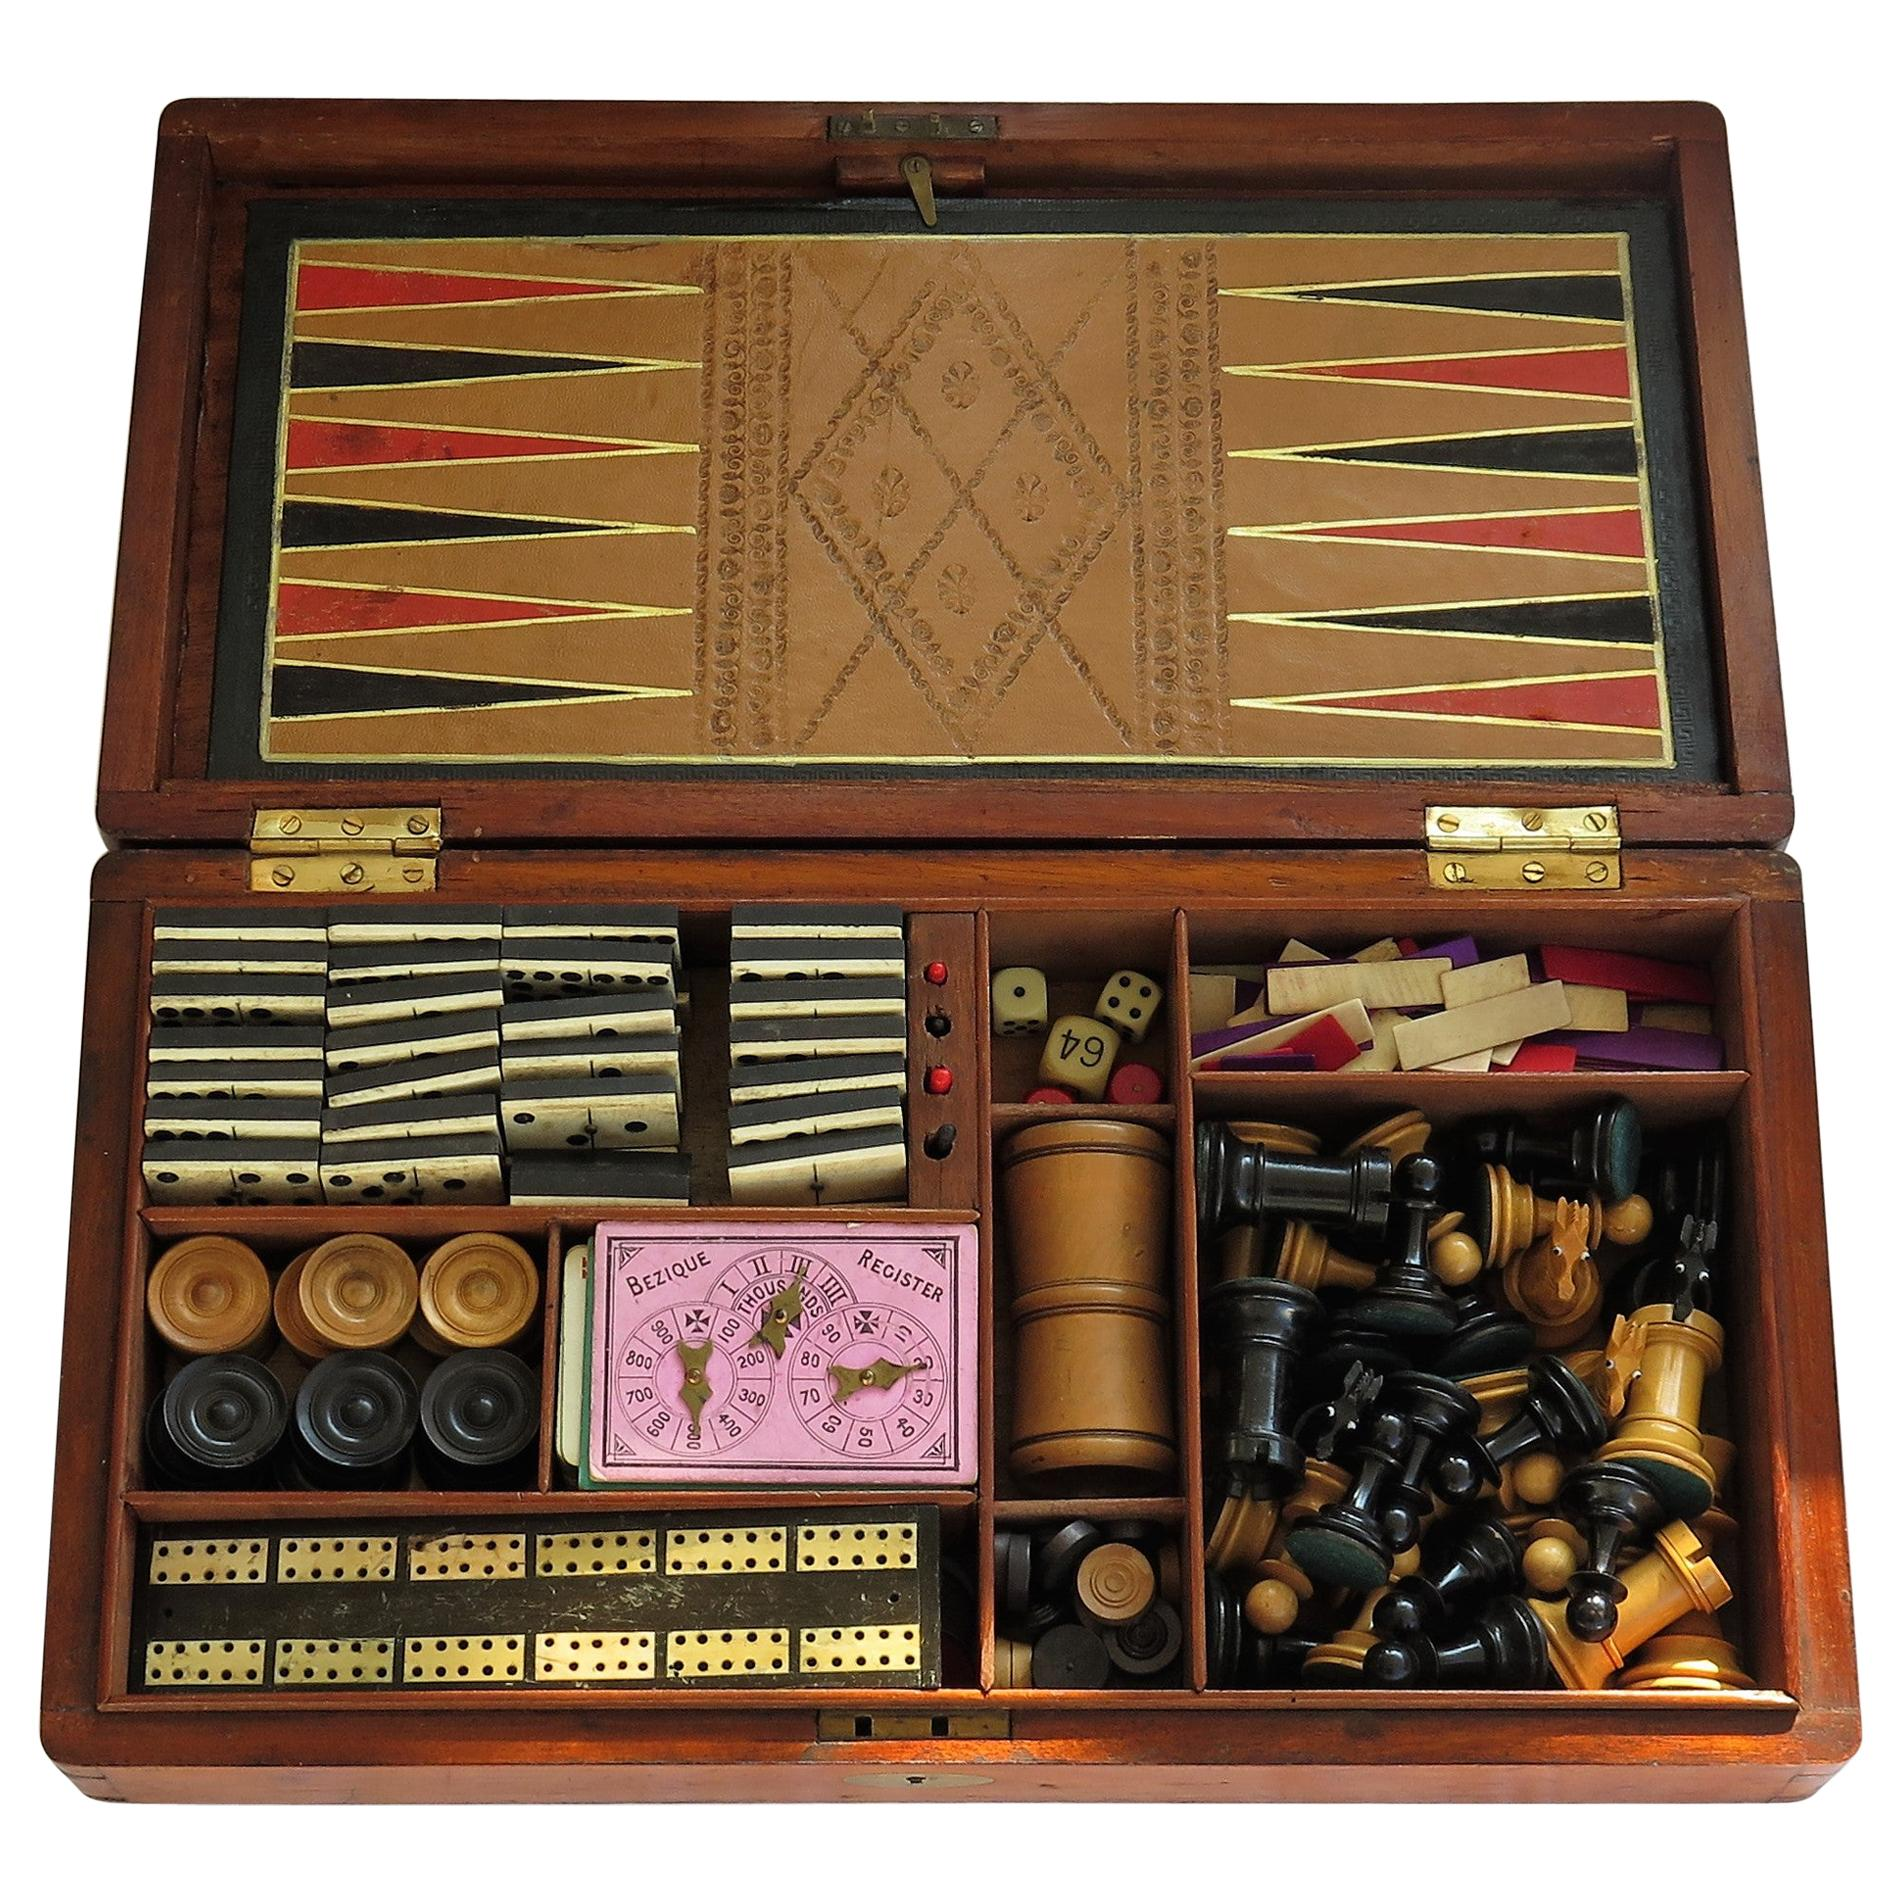 19th Century Large Games Compendium in Hardwood Jointed Box with Many Games